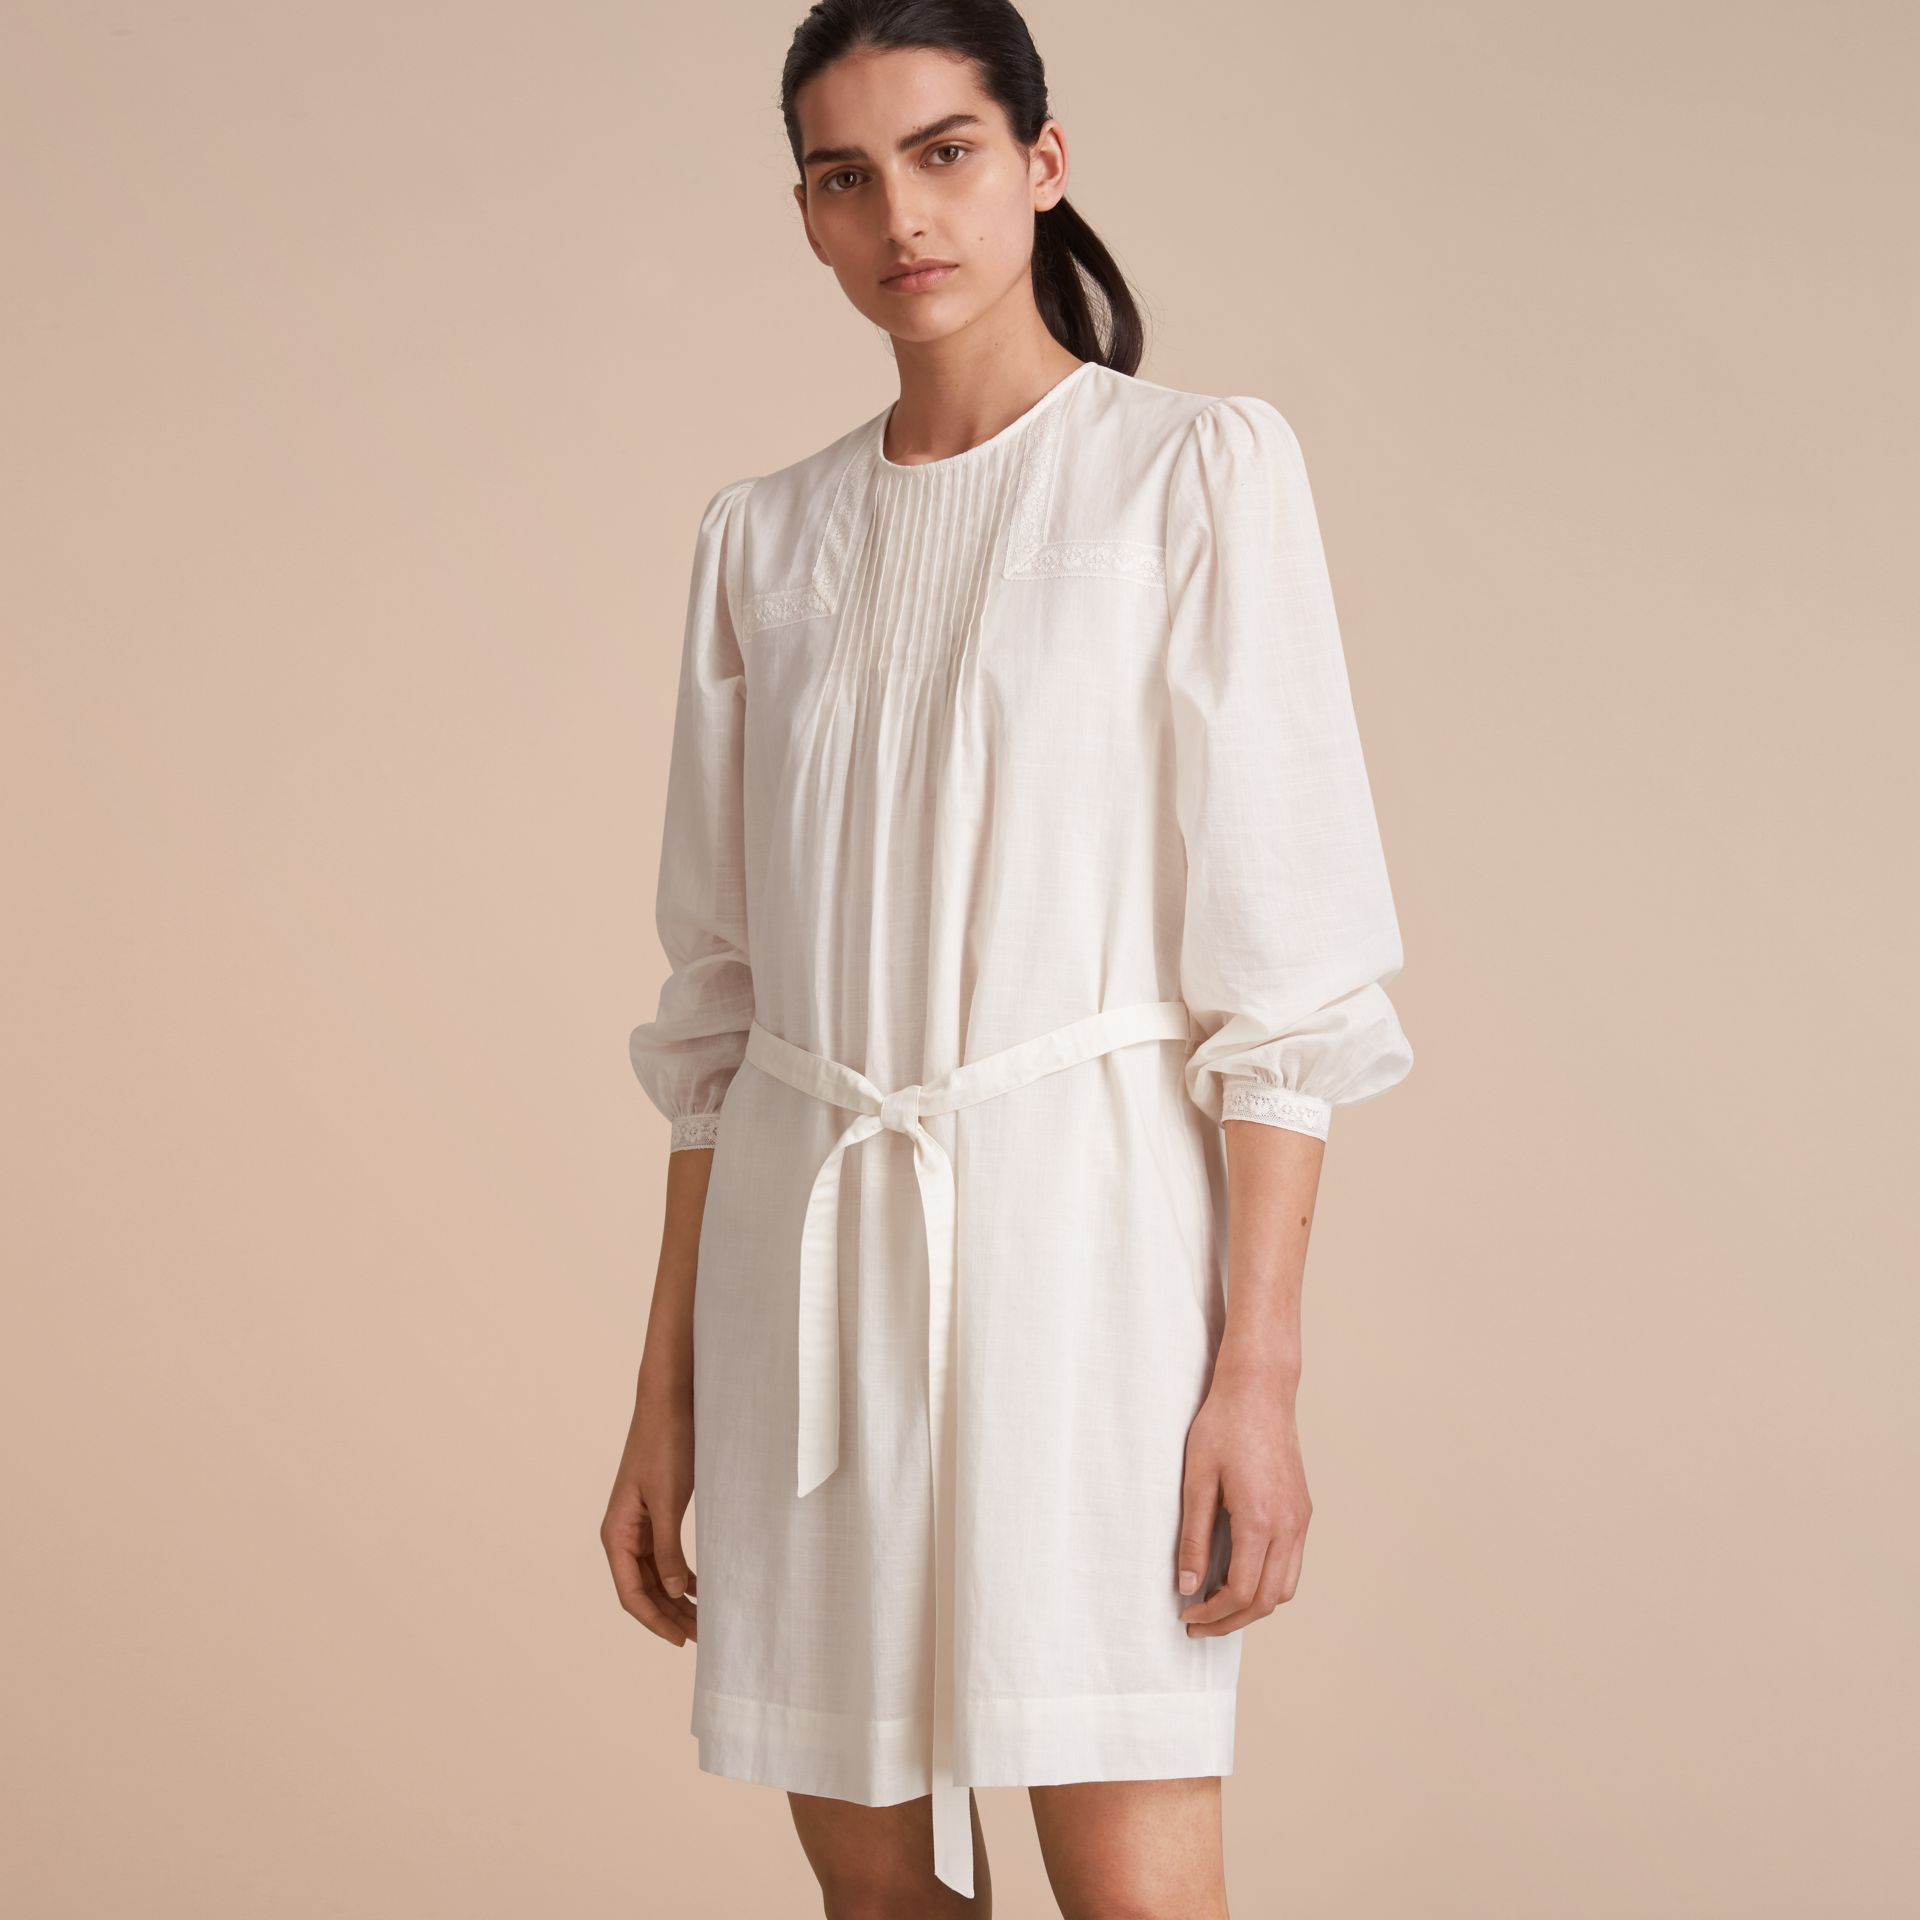 Pintuck and Lace Detail Cotton Dress in Natural White - Women | Burberry - gallery image 6